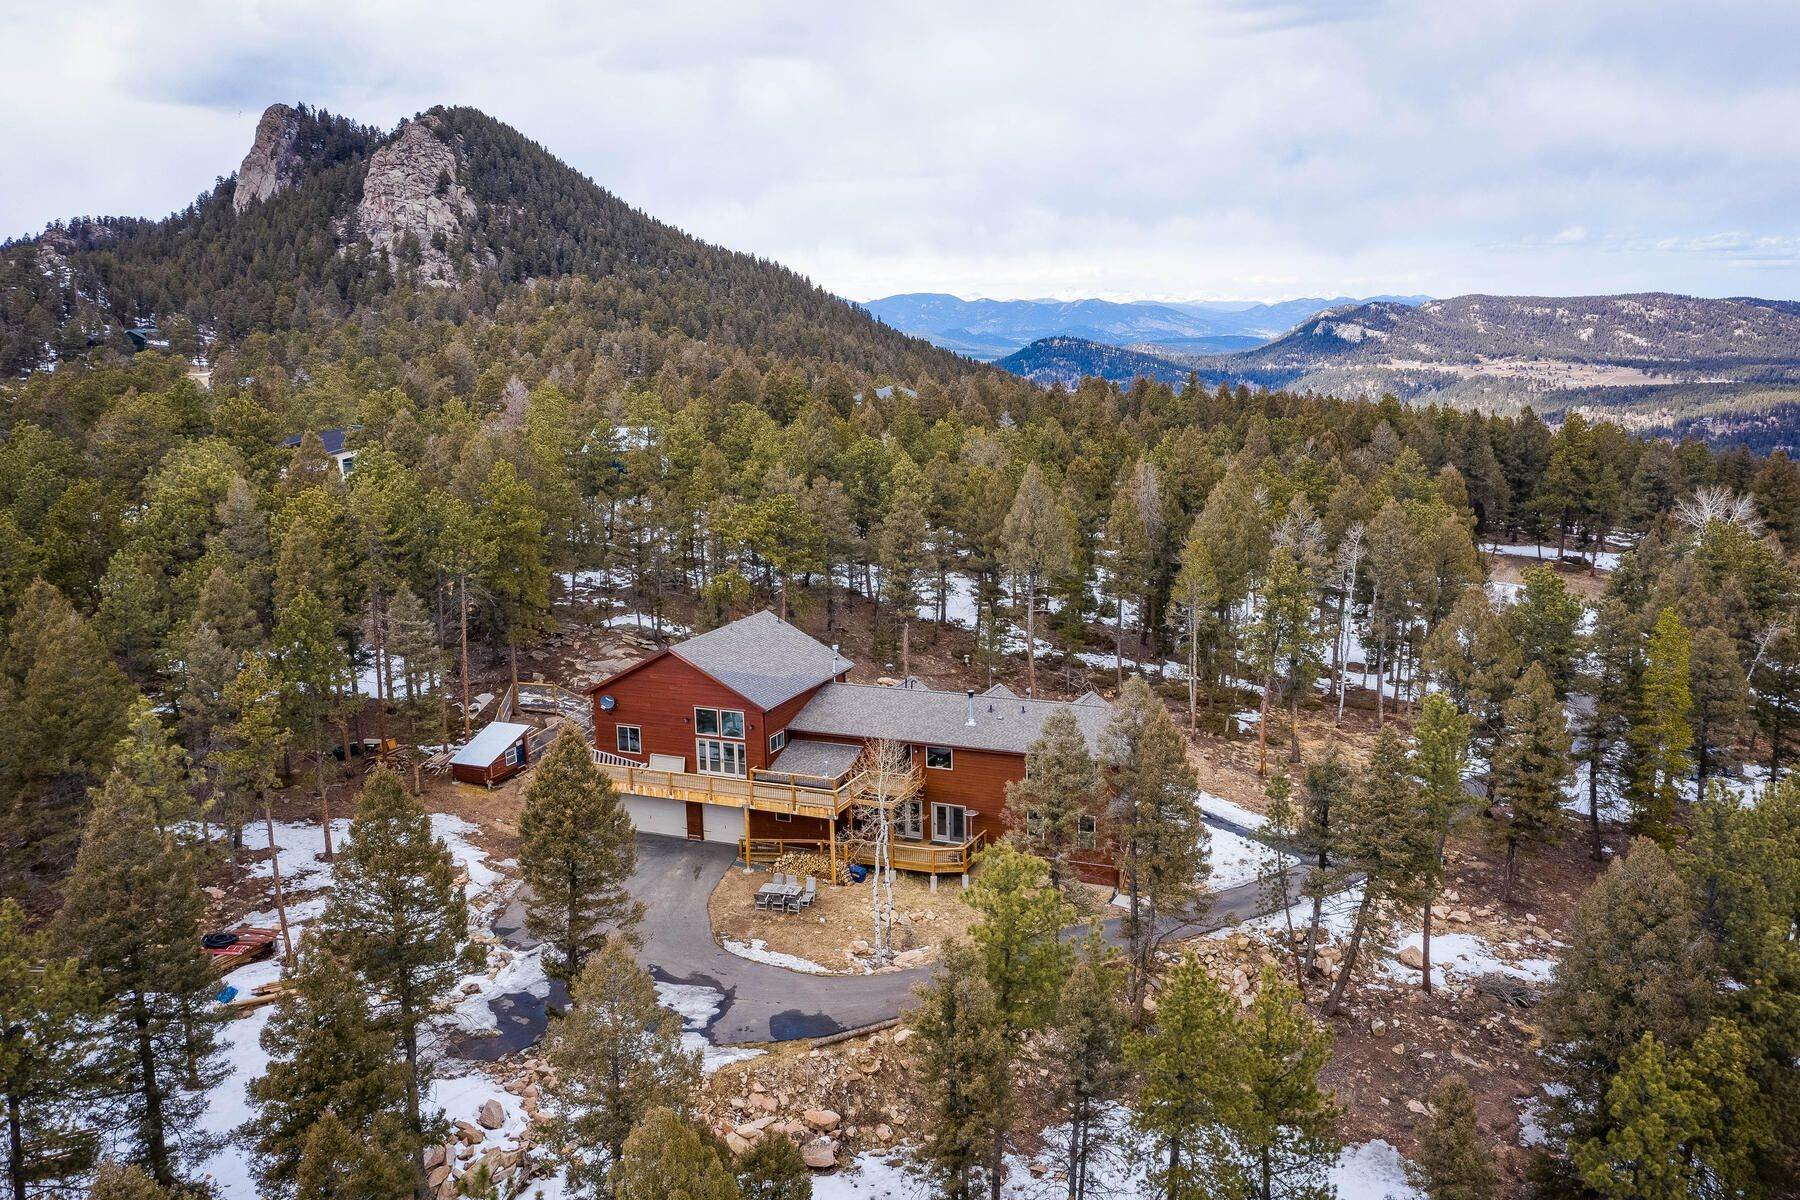 Single Family Homes for Sale at 12948 Piano Meadows Drive, Conifer, Co, 80433 12948 Piano Meadows Drive Conifer, Colorado 80433 United States